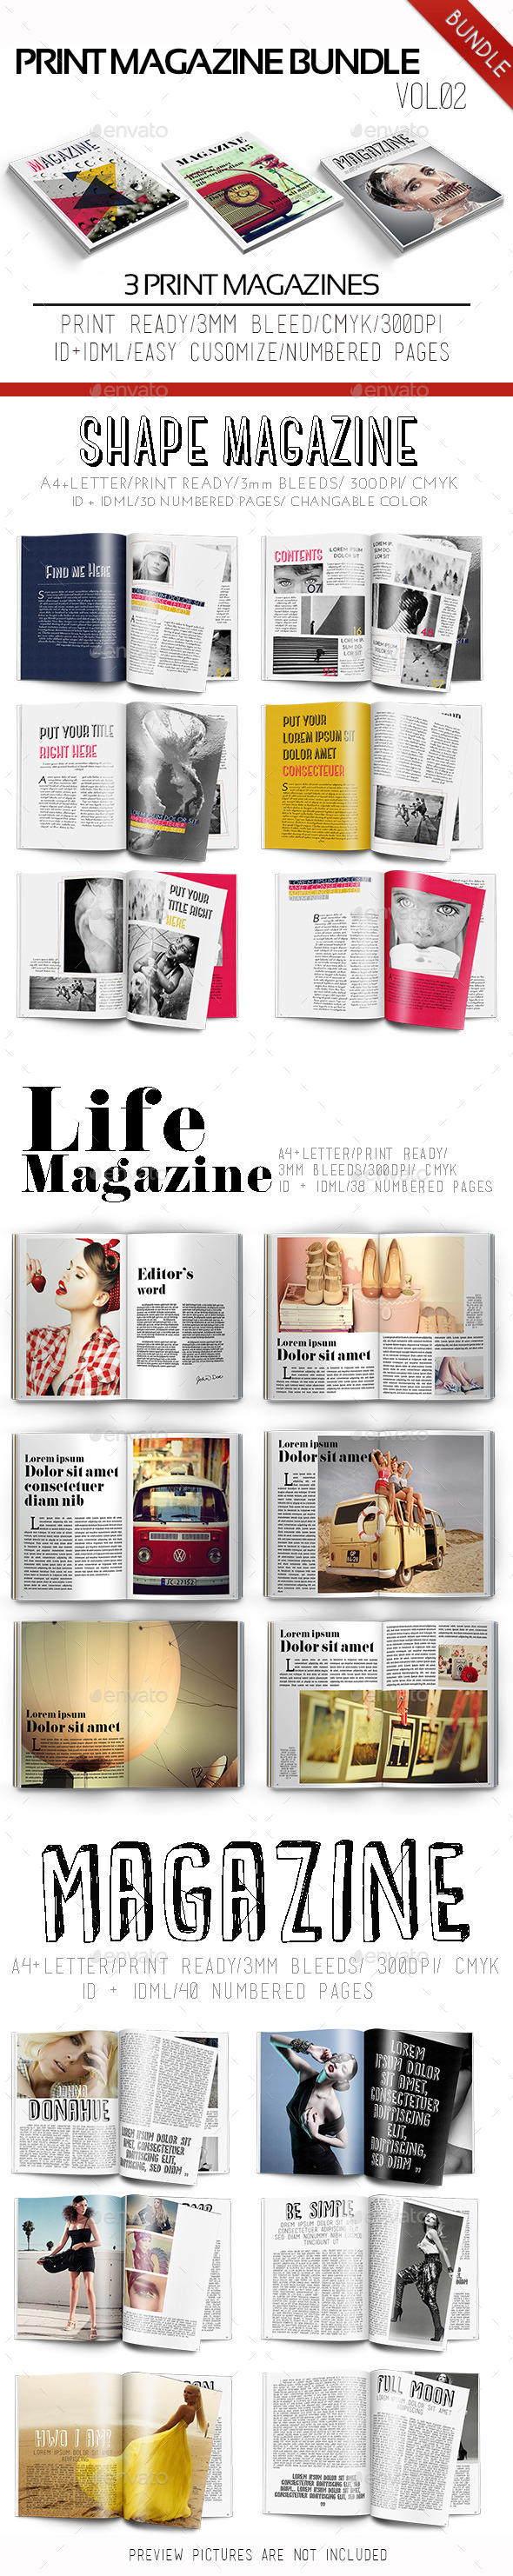 Print Magazine Bundle Vol.02 - Magazines Print Templates